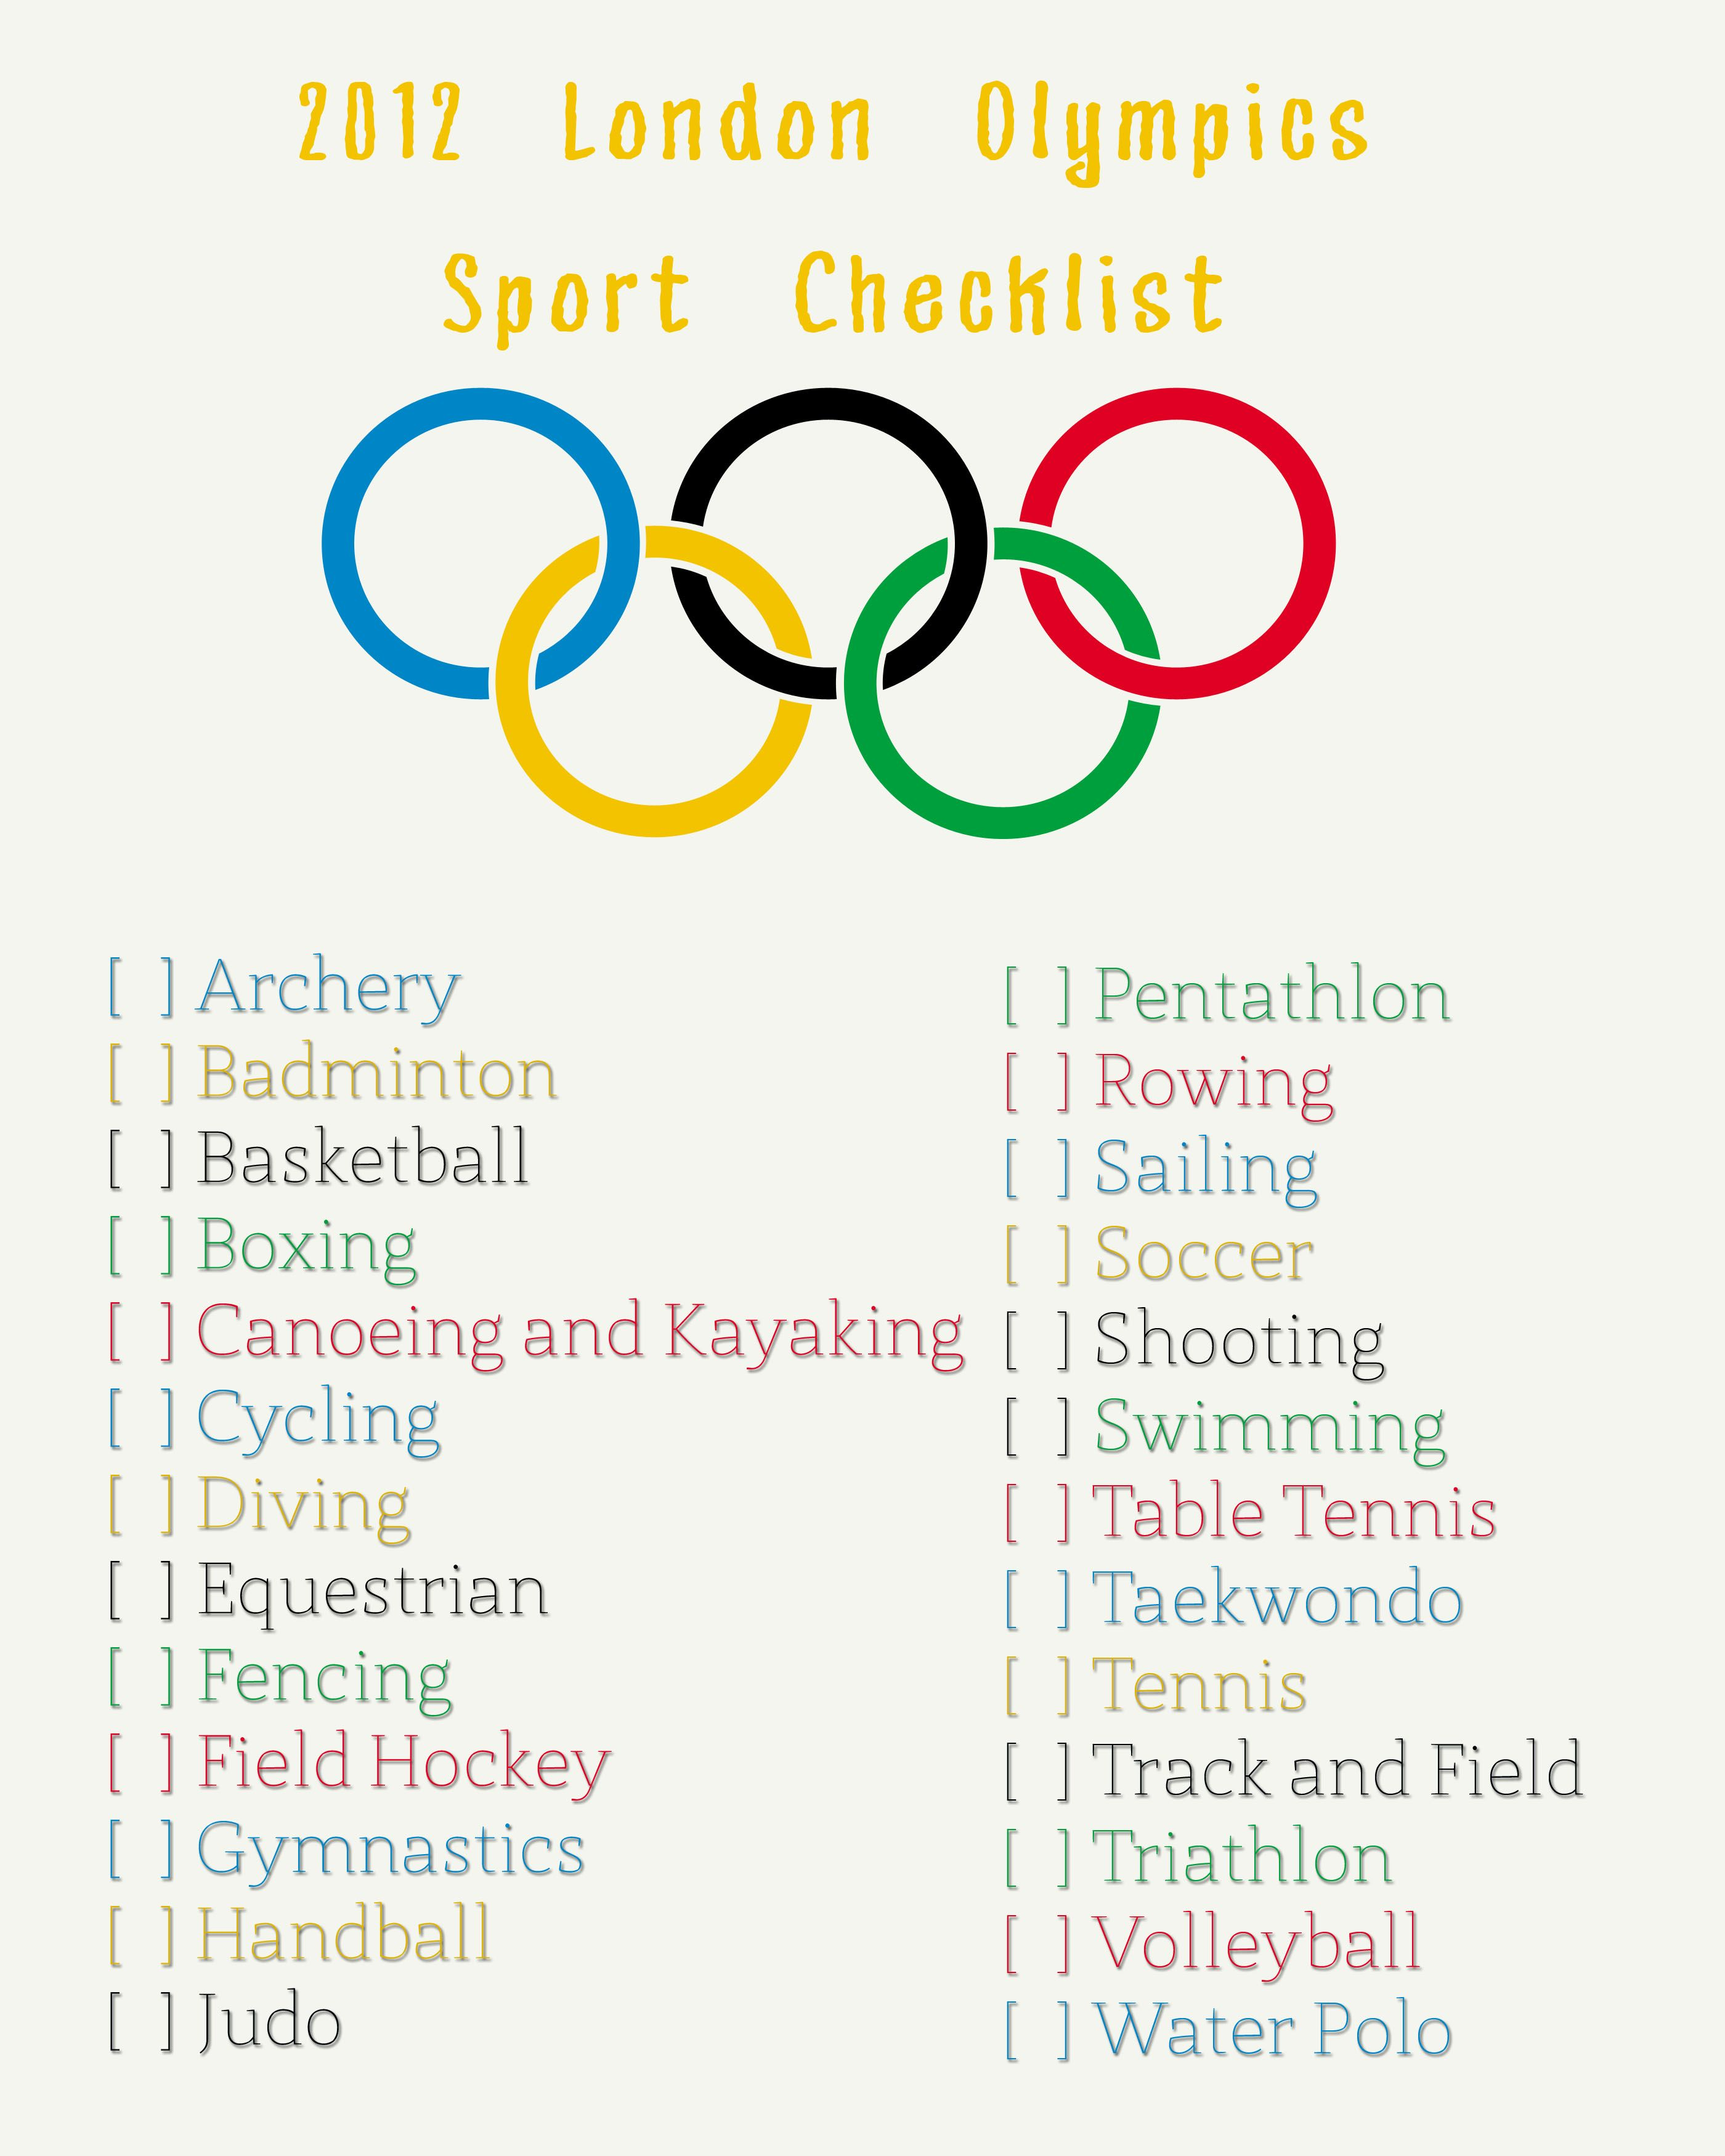 olympic checklist: how many different sports can you try? or watch